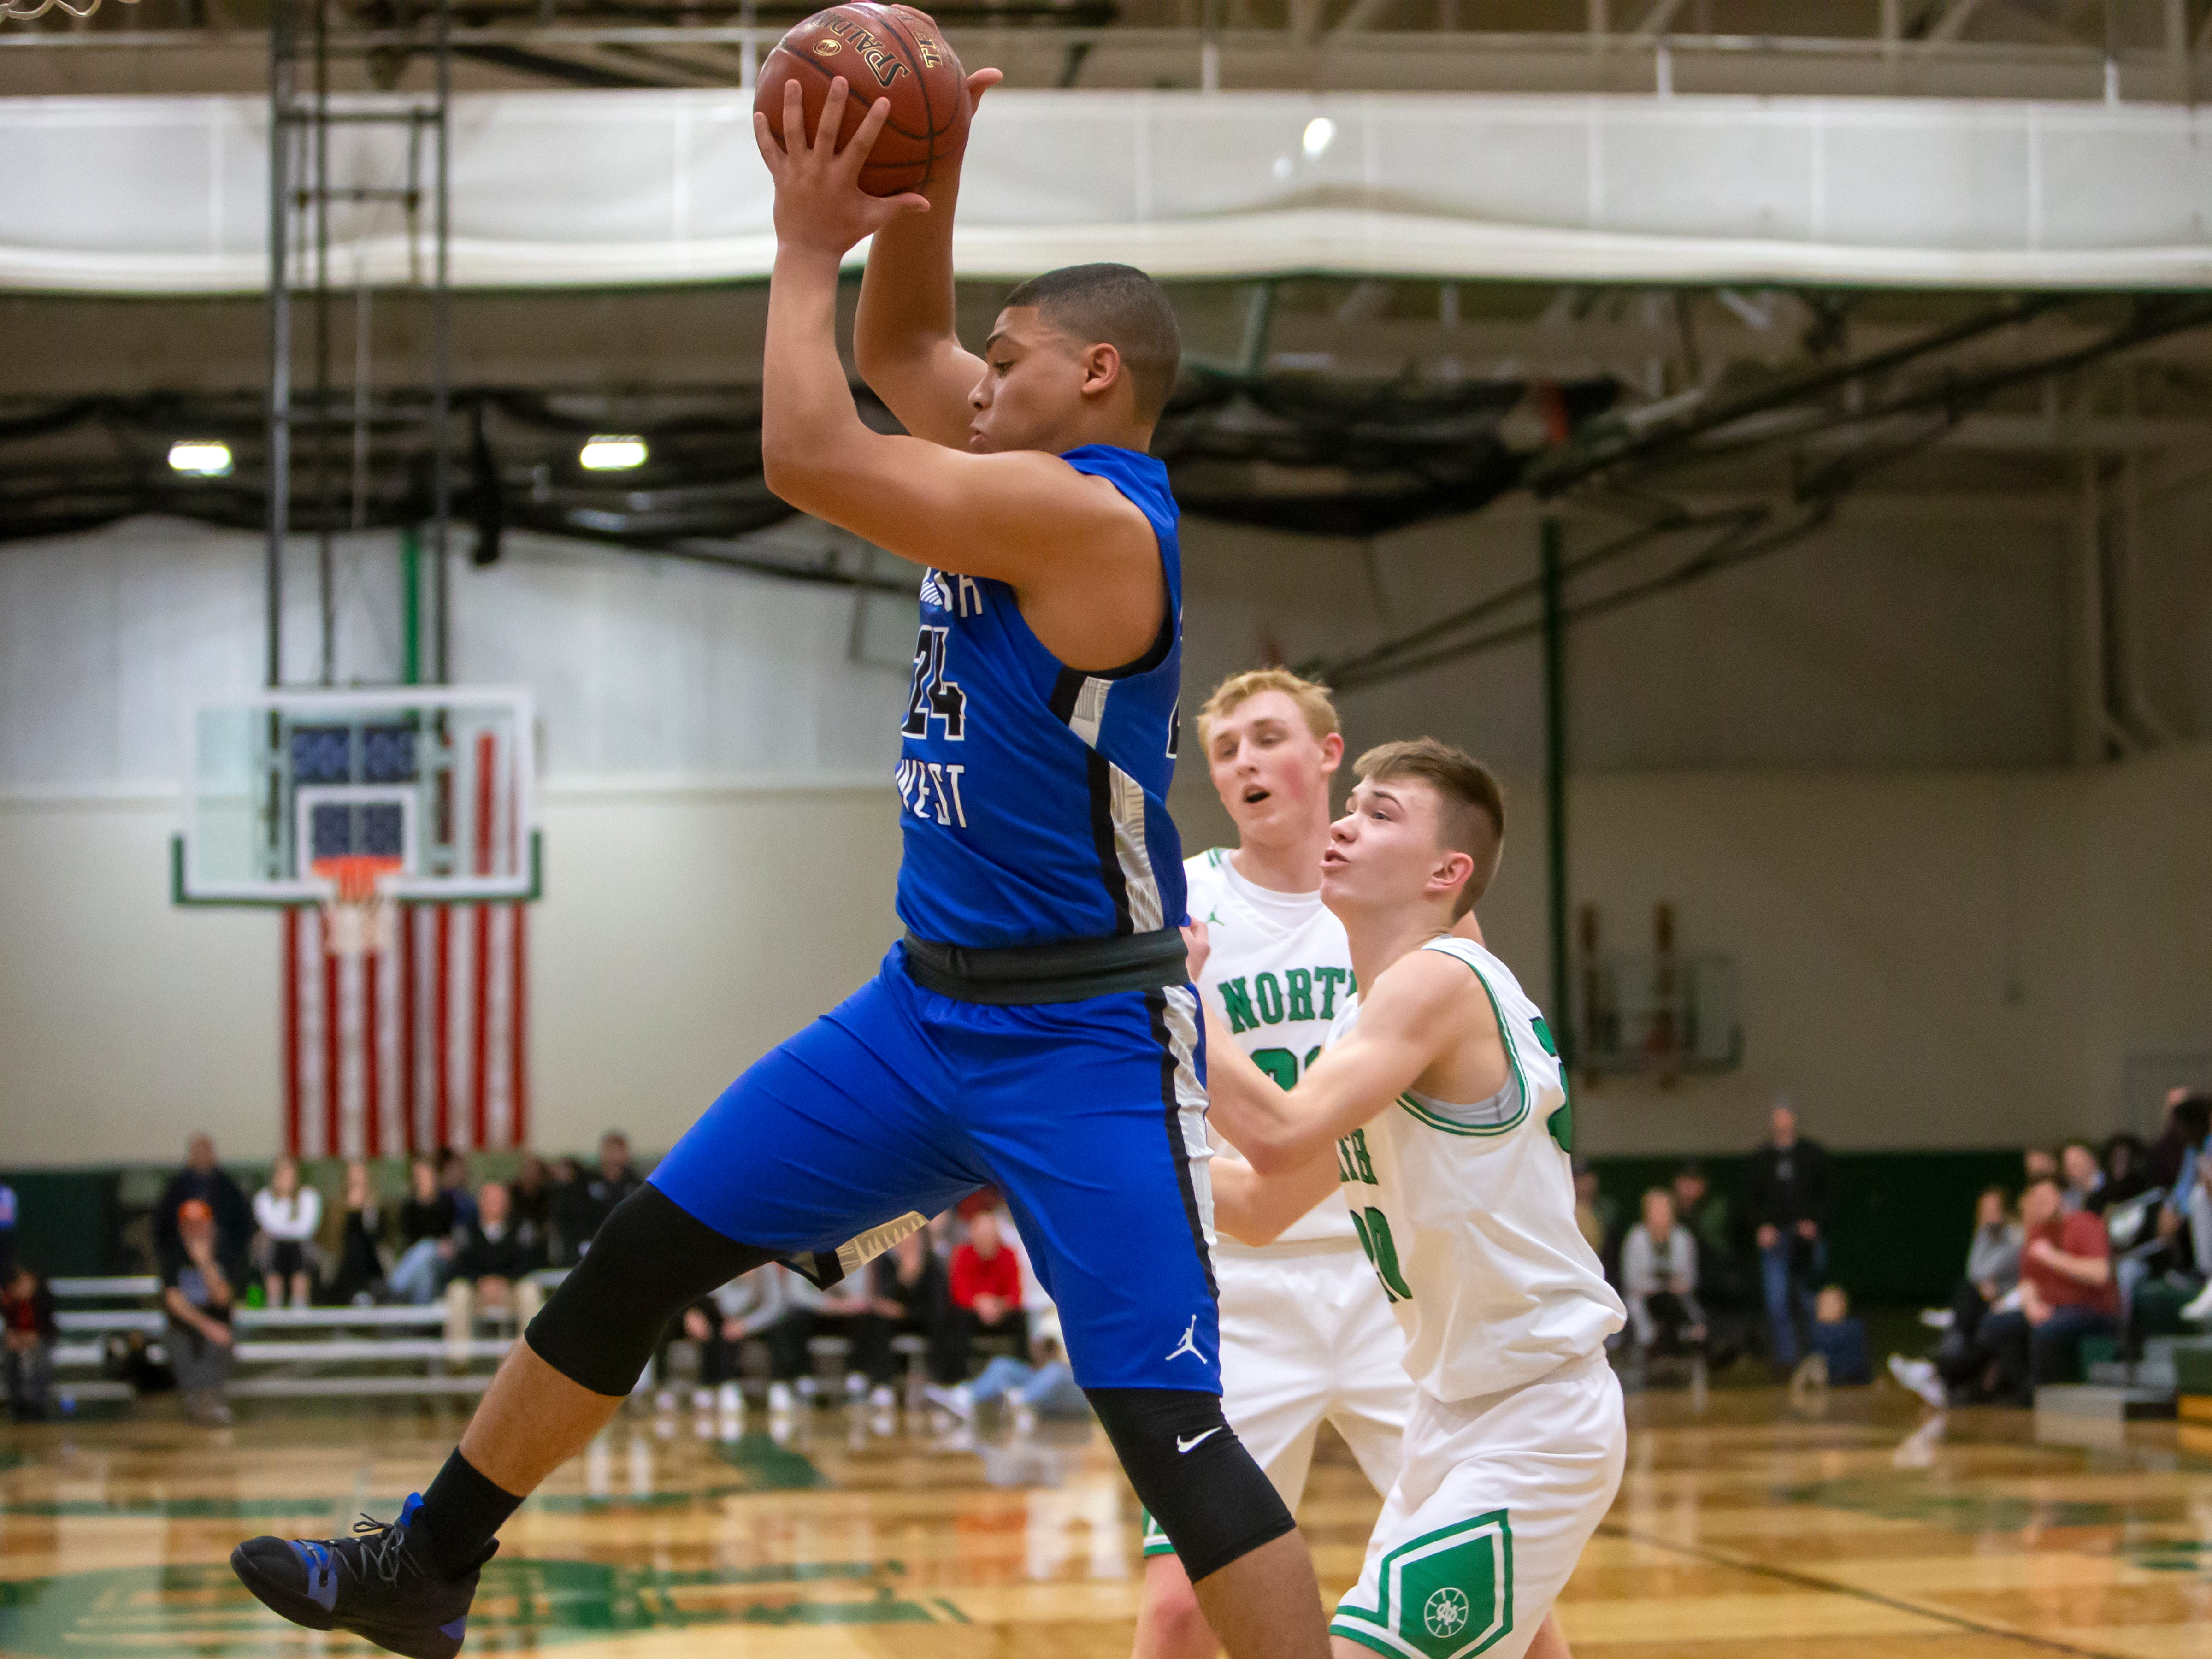 Oshkosh West's Karter Thomas comes down with the rebound playing against the Spartans at the Oshkosh North High School on Tuesday, Jan. 8, 2019.